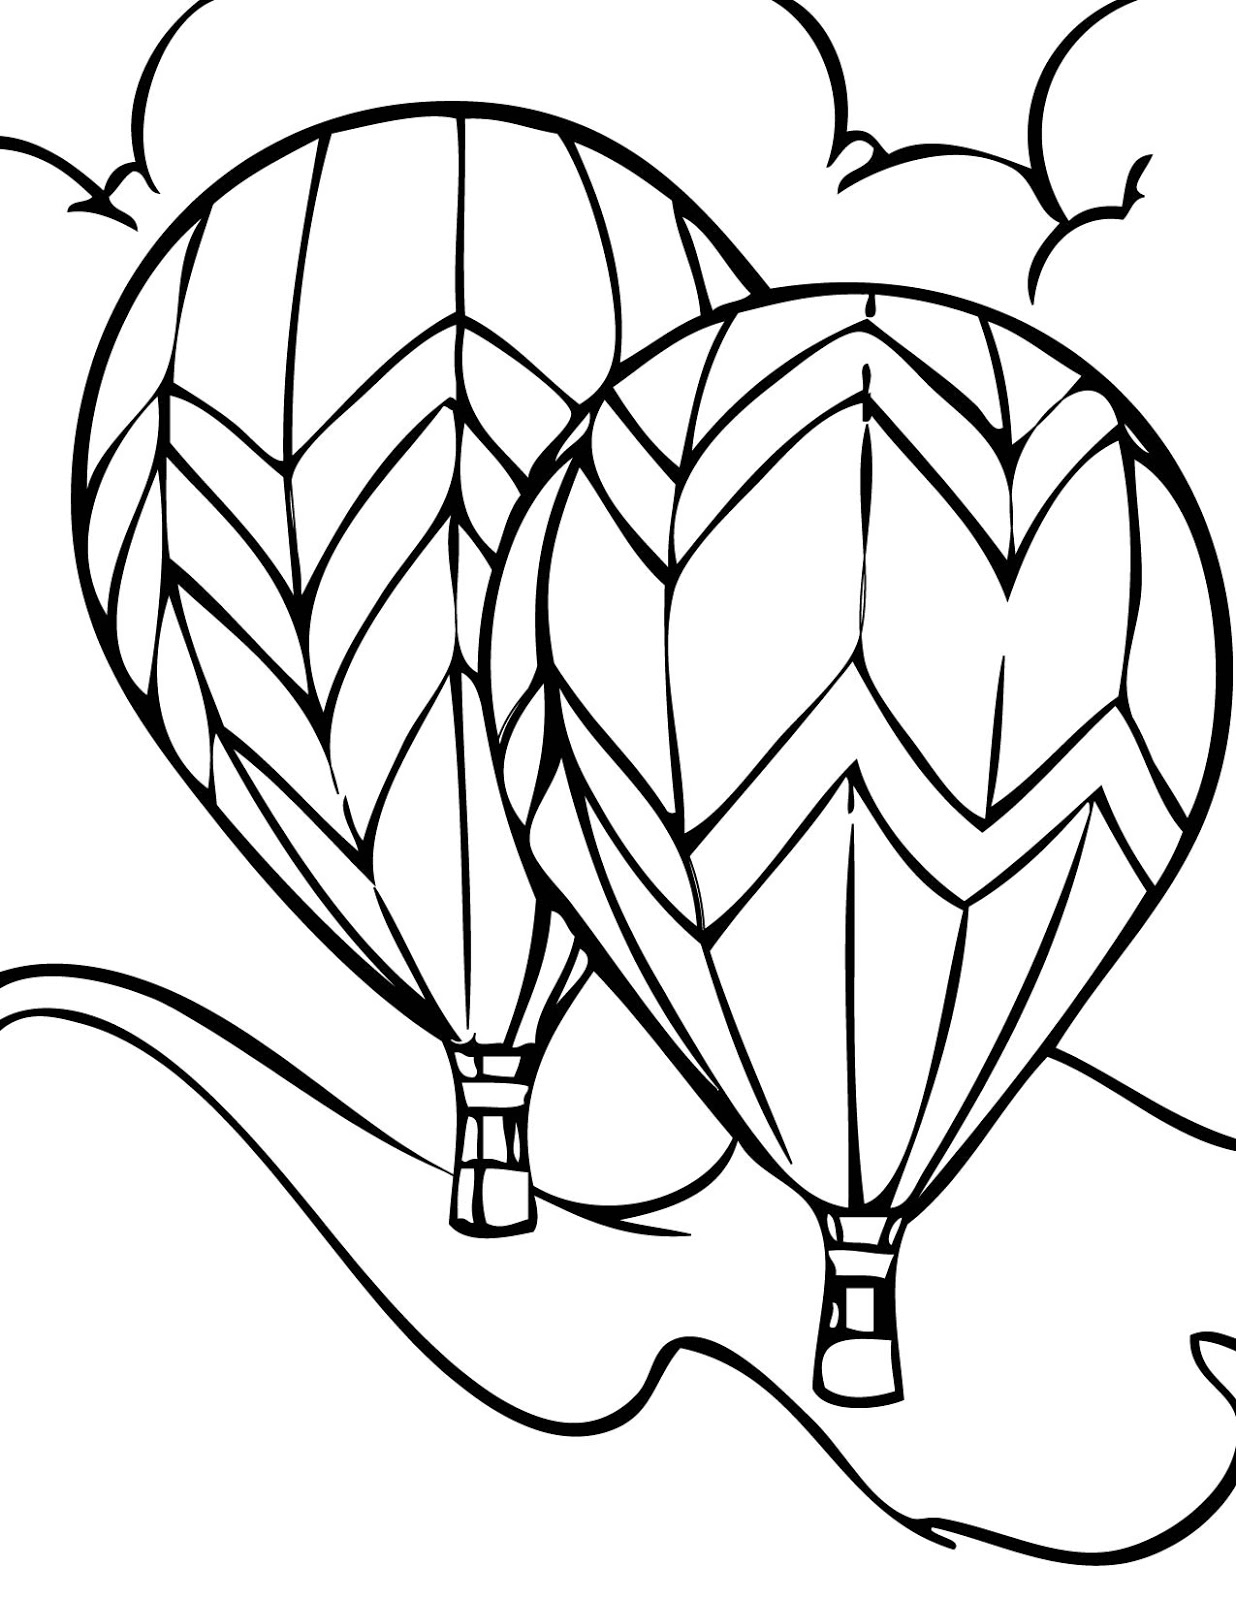 hot air balloon coloring pages Download-Hot Air Balloons Coloring Pages 12-a